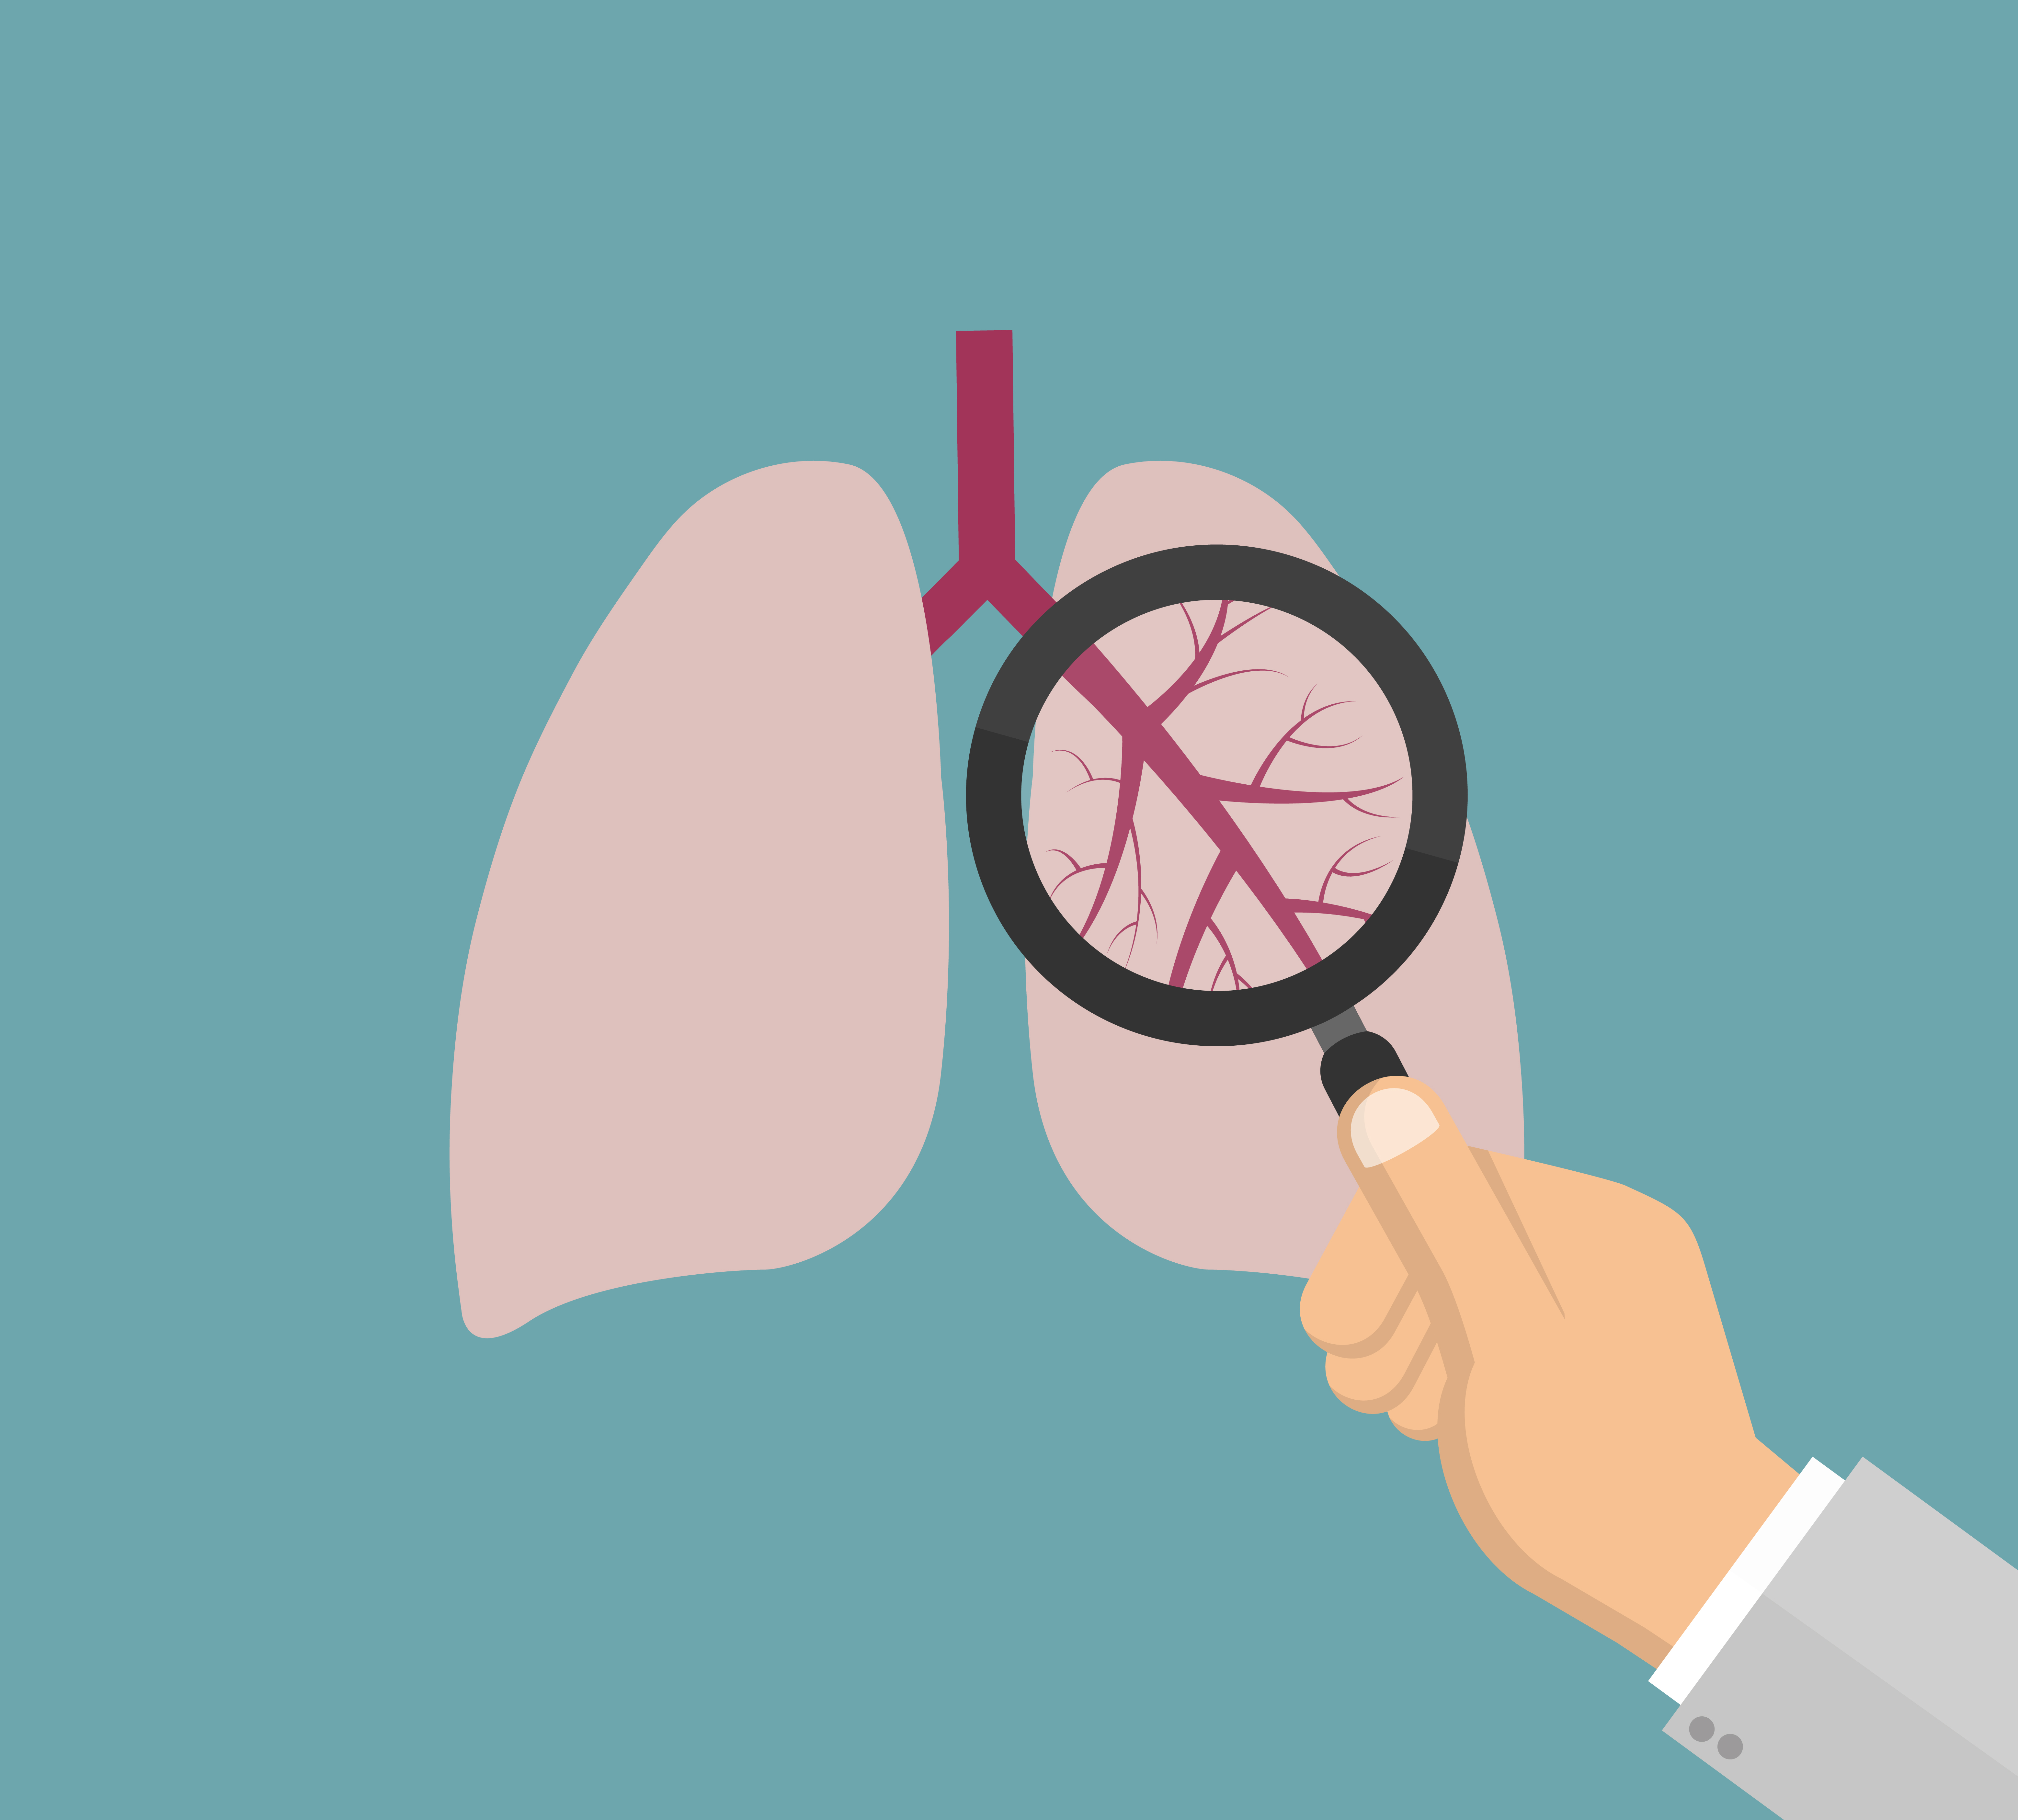 Capillaroscopy May Help Earlier Detection of Systemic Sclerosis-Related Interstitial Lung Disease Cases